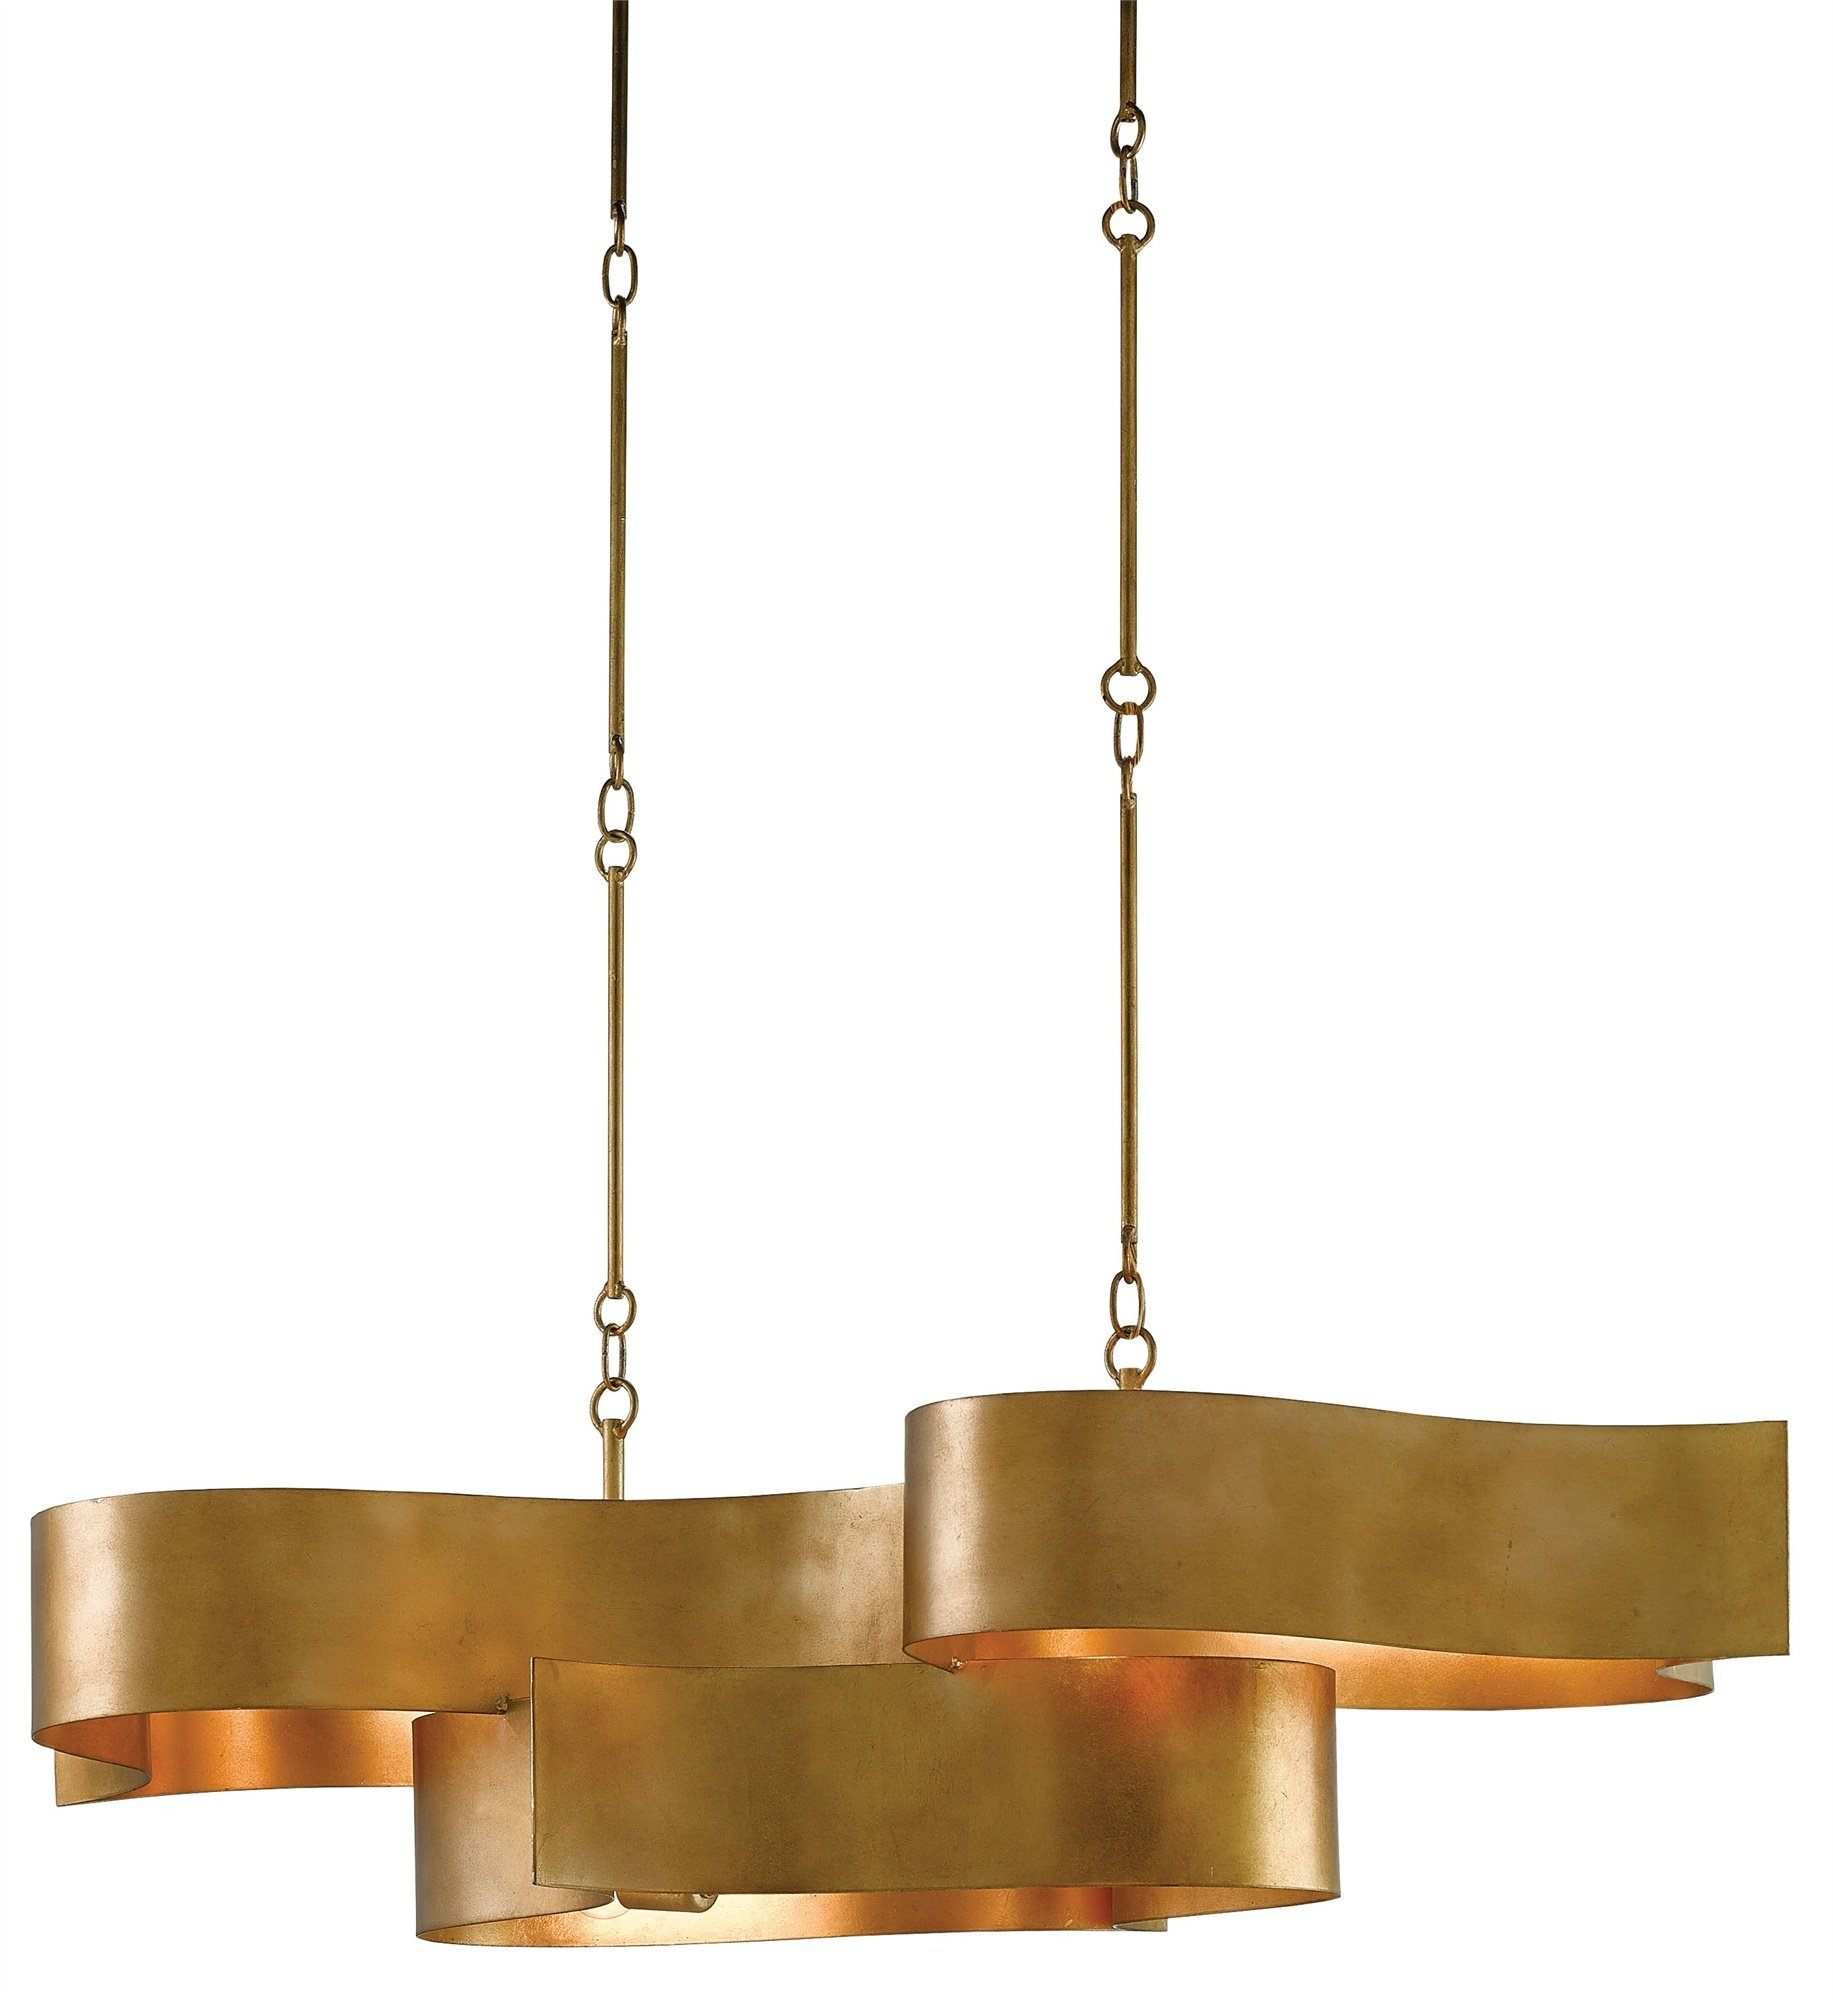 Currey and Company Grand Lotus Oval Chandelier 9000-0046 - LOVECUP